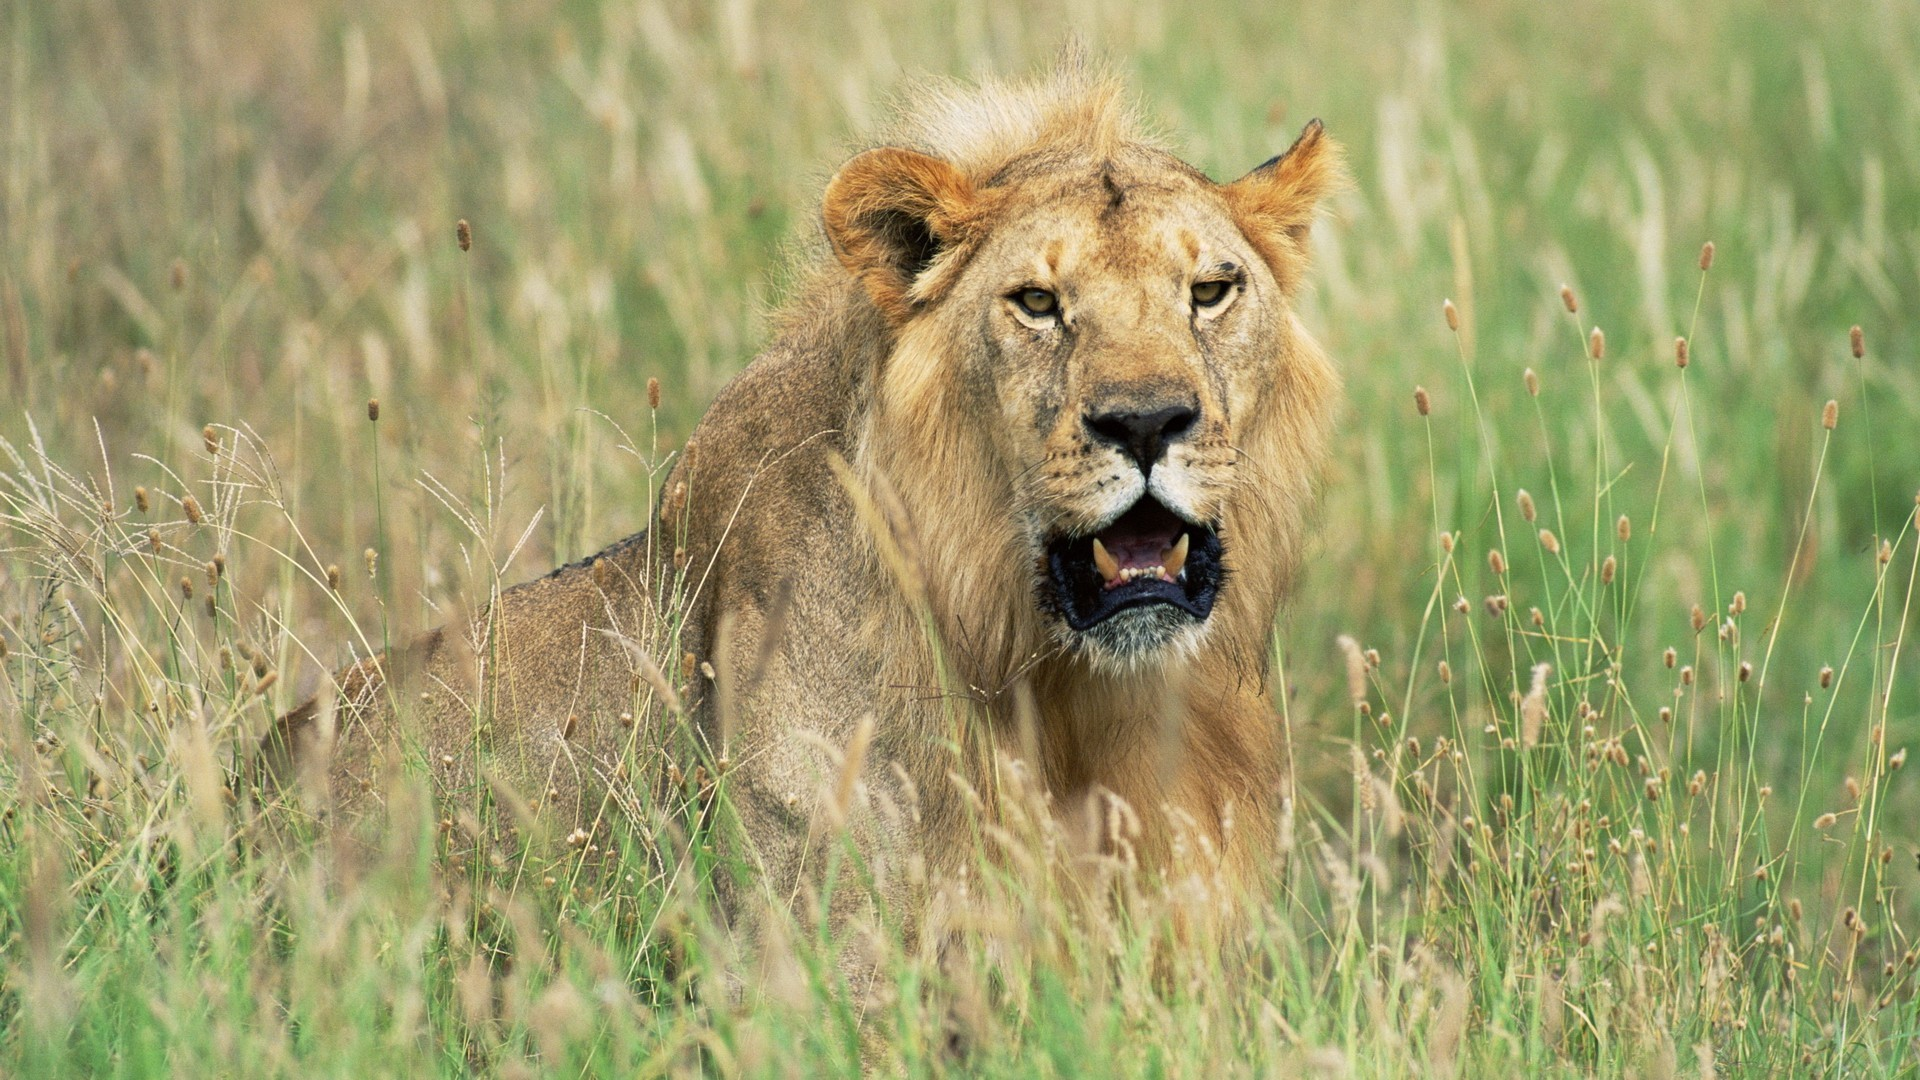 Lion Hd Wallpapers Backgrounds Wallpaper 1920 1080 Picture: Africa Animals Lions Nature Wallpaper